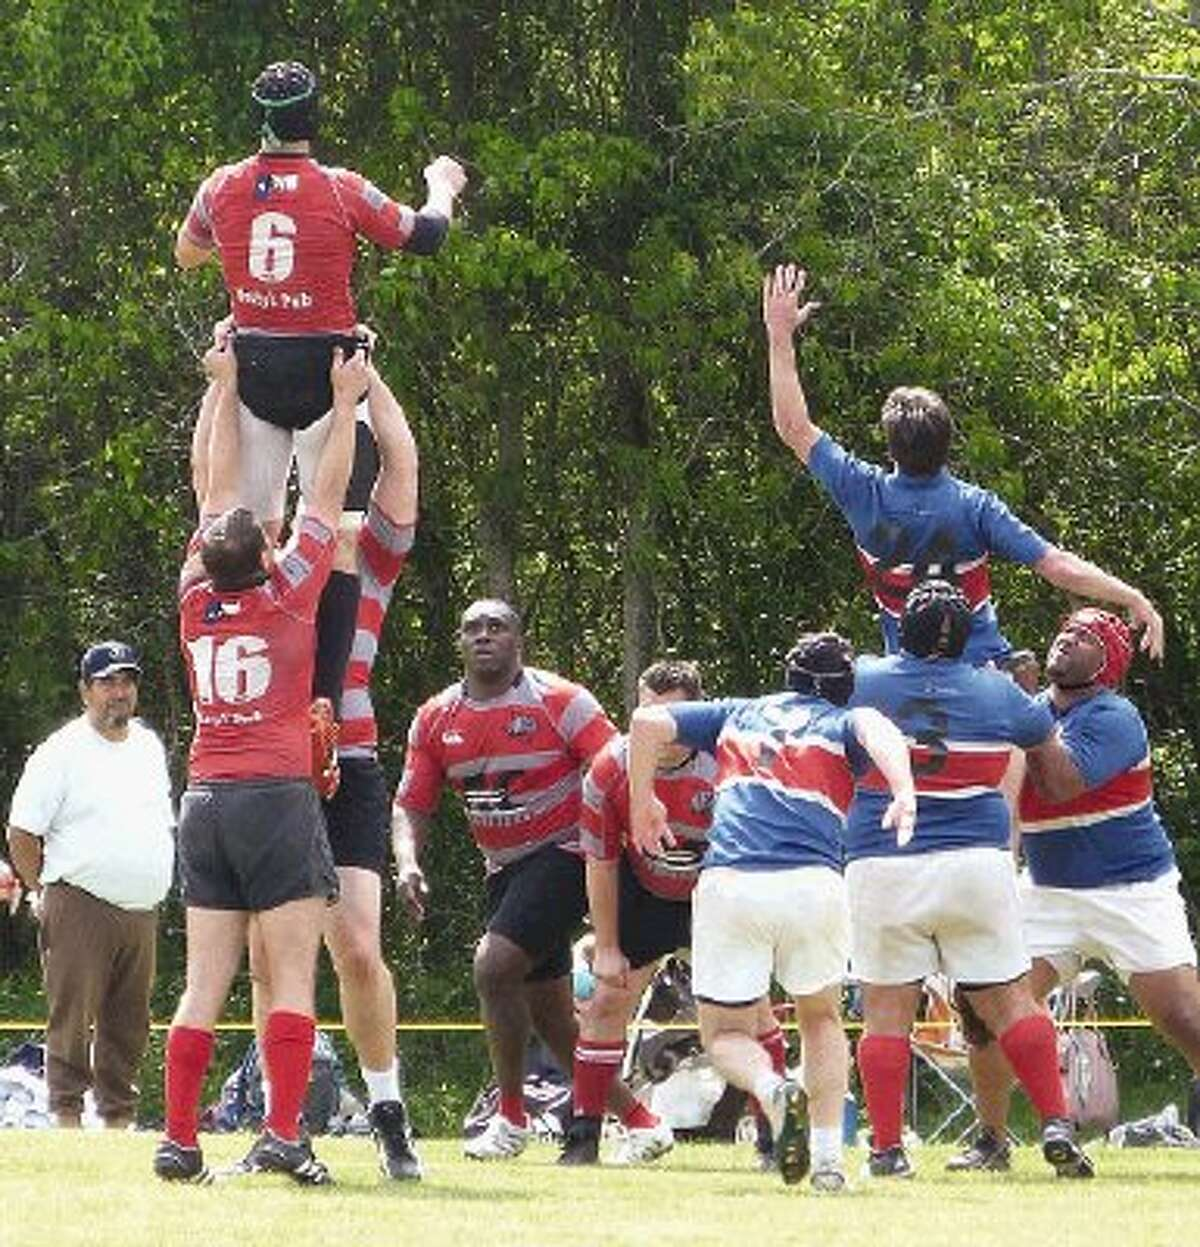 Rugby may look a little like soccer and even more like football, but its a very different sport.